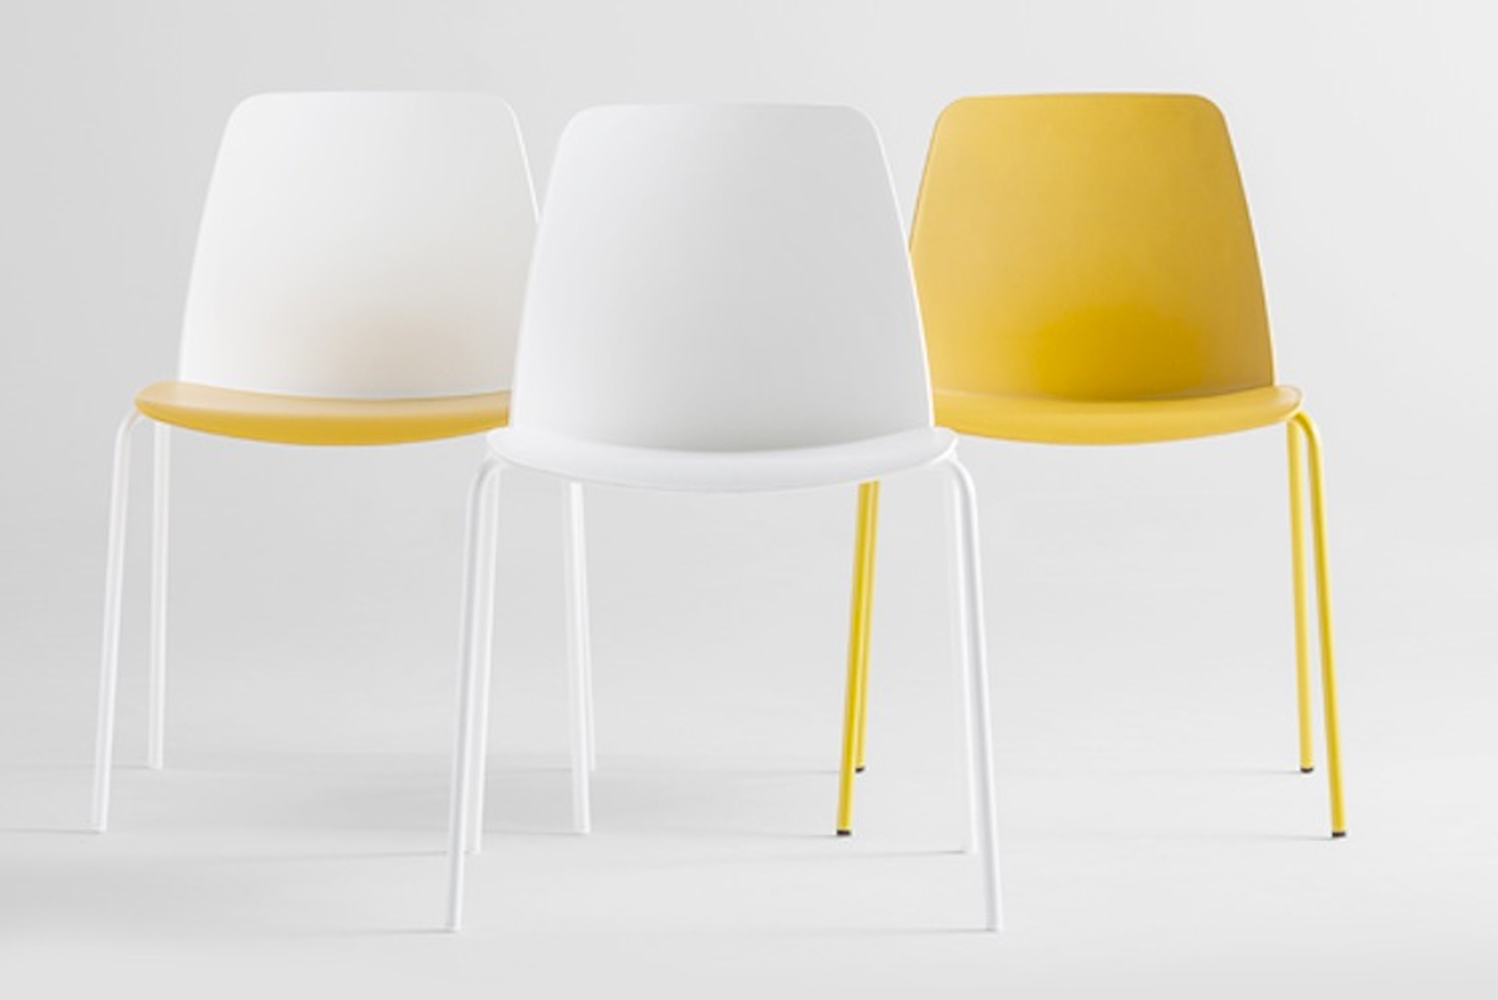 Introducing the Unnia range of chairs by Sandler Seating.